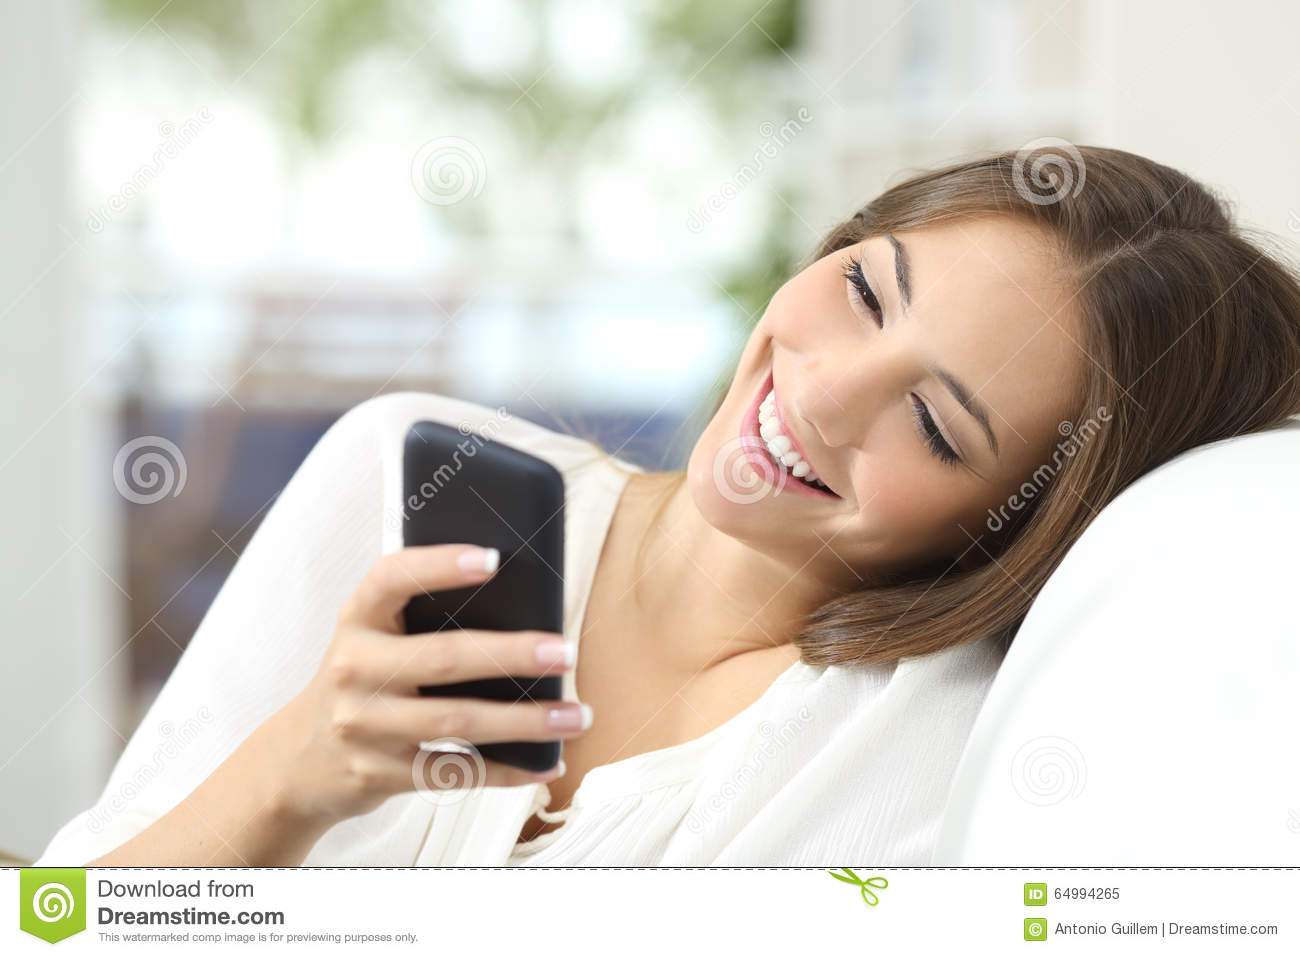 Girl Texting On A Mobile Phone At Home Stock Photo Image